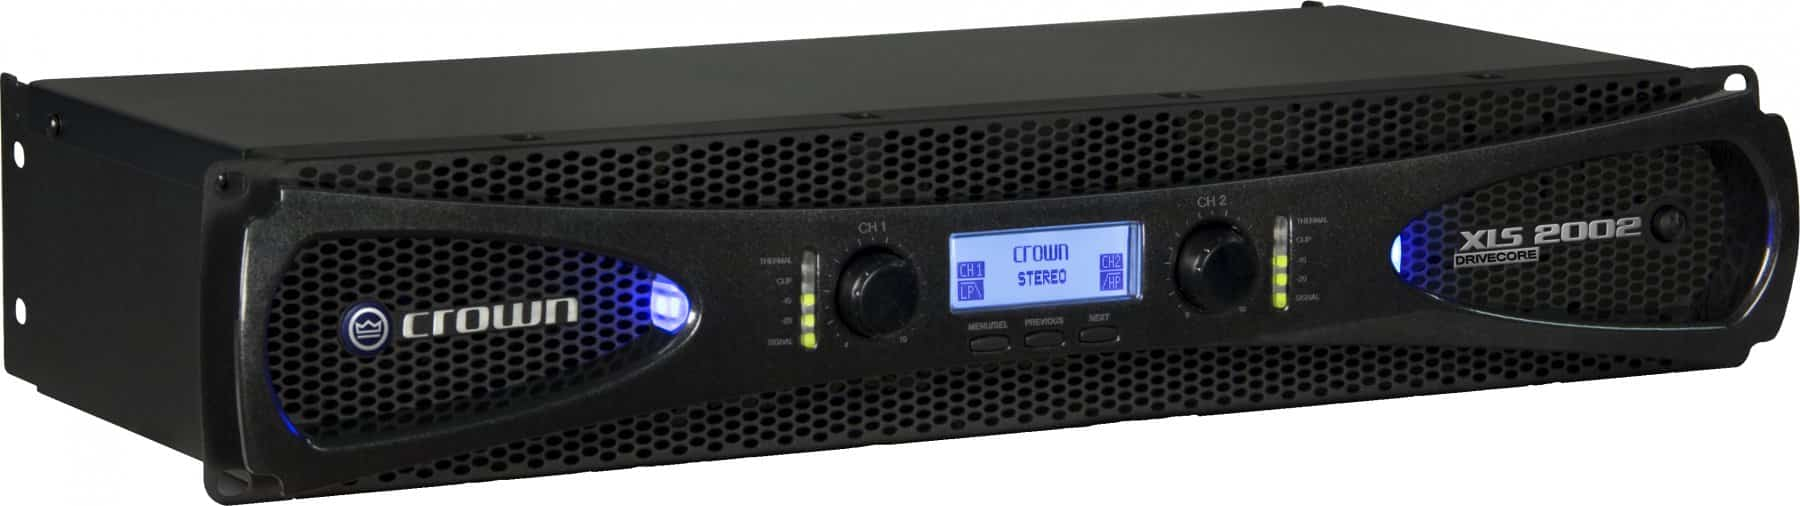 Crown XLS2002 Endstufe Stereo